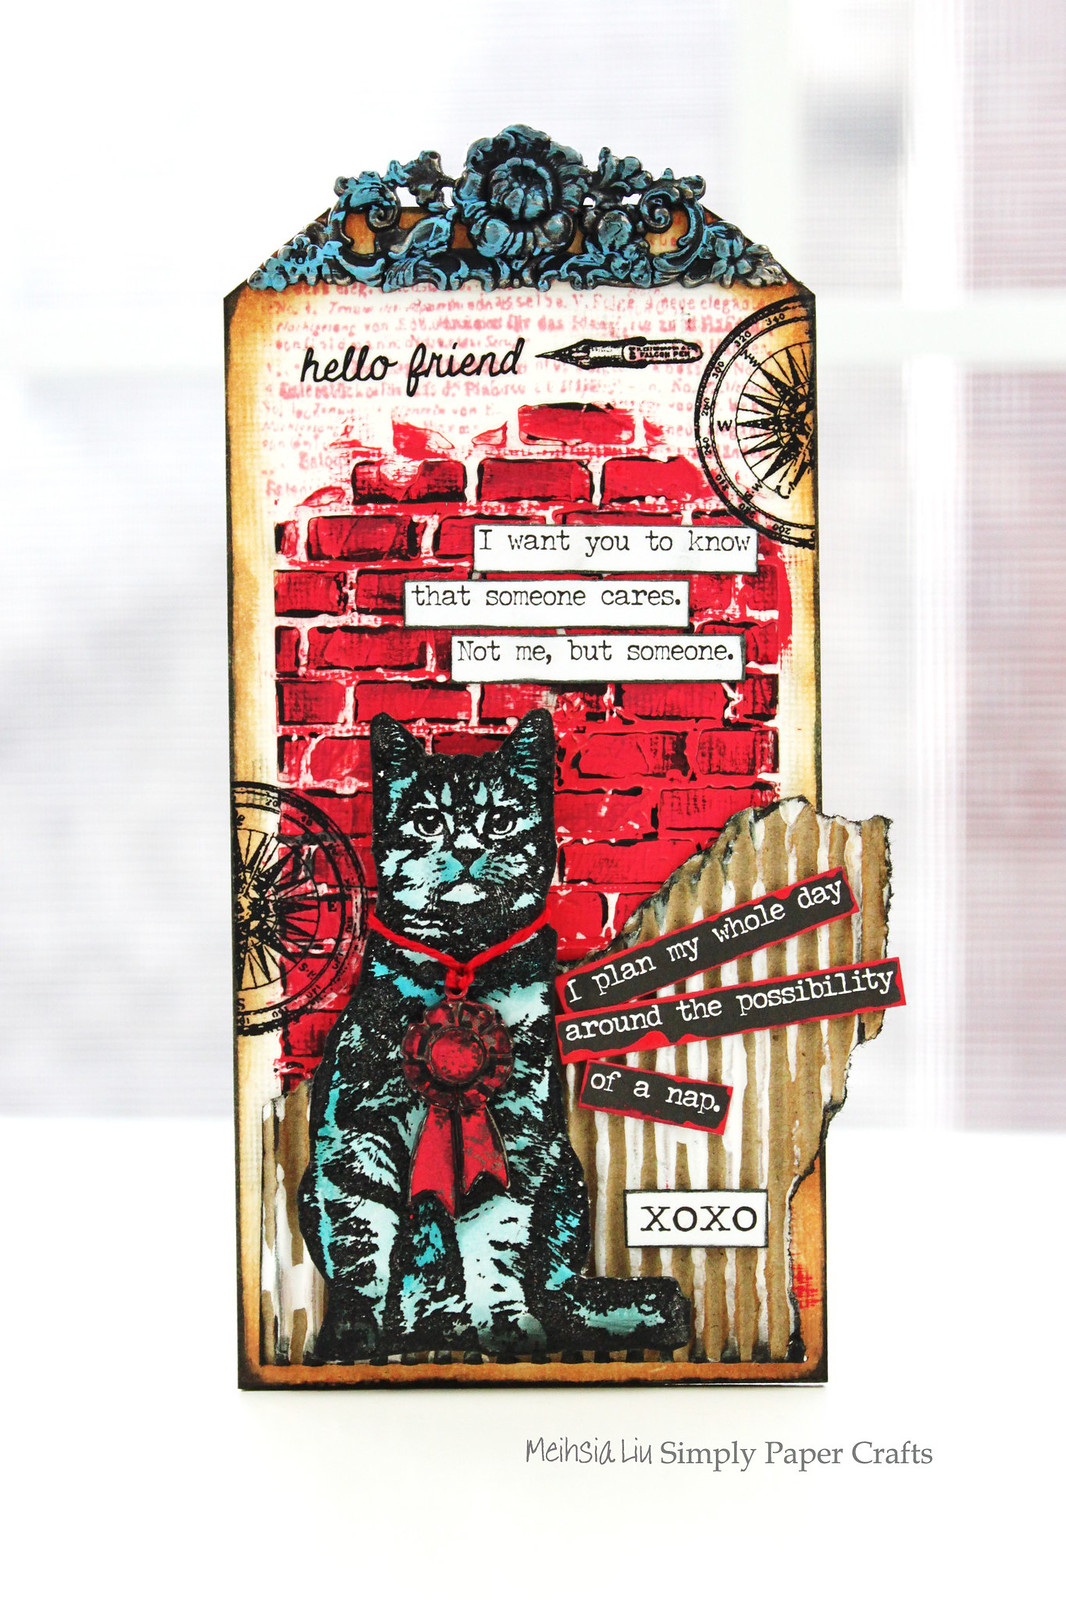 Meihsia Liu Simply Paper Crafts Mixed Media Tag Red White Blue Cat Simon Says Stamp Tim Holtz DarkRoom Door 1